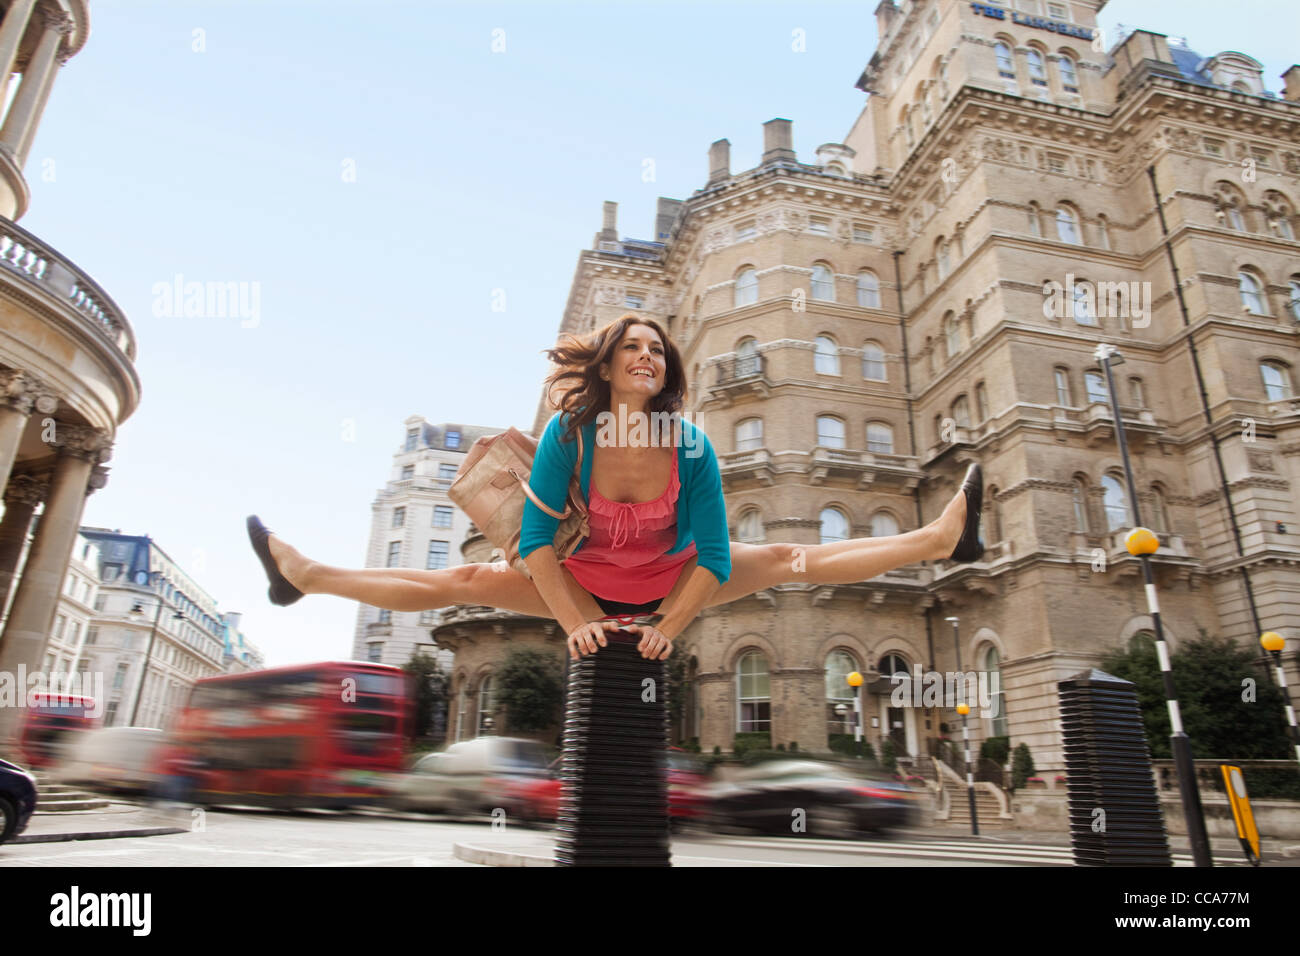 Mid adult woman in pink dress leapfrogging par city street Photo Stock